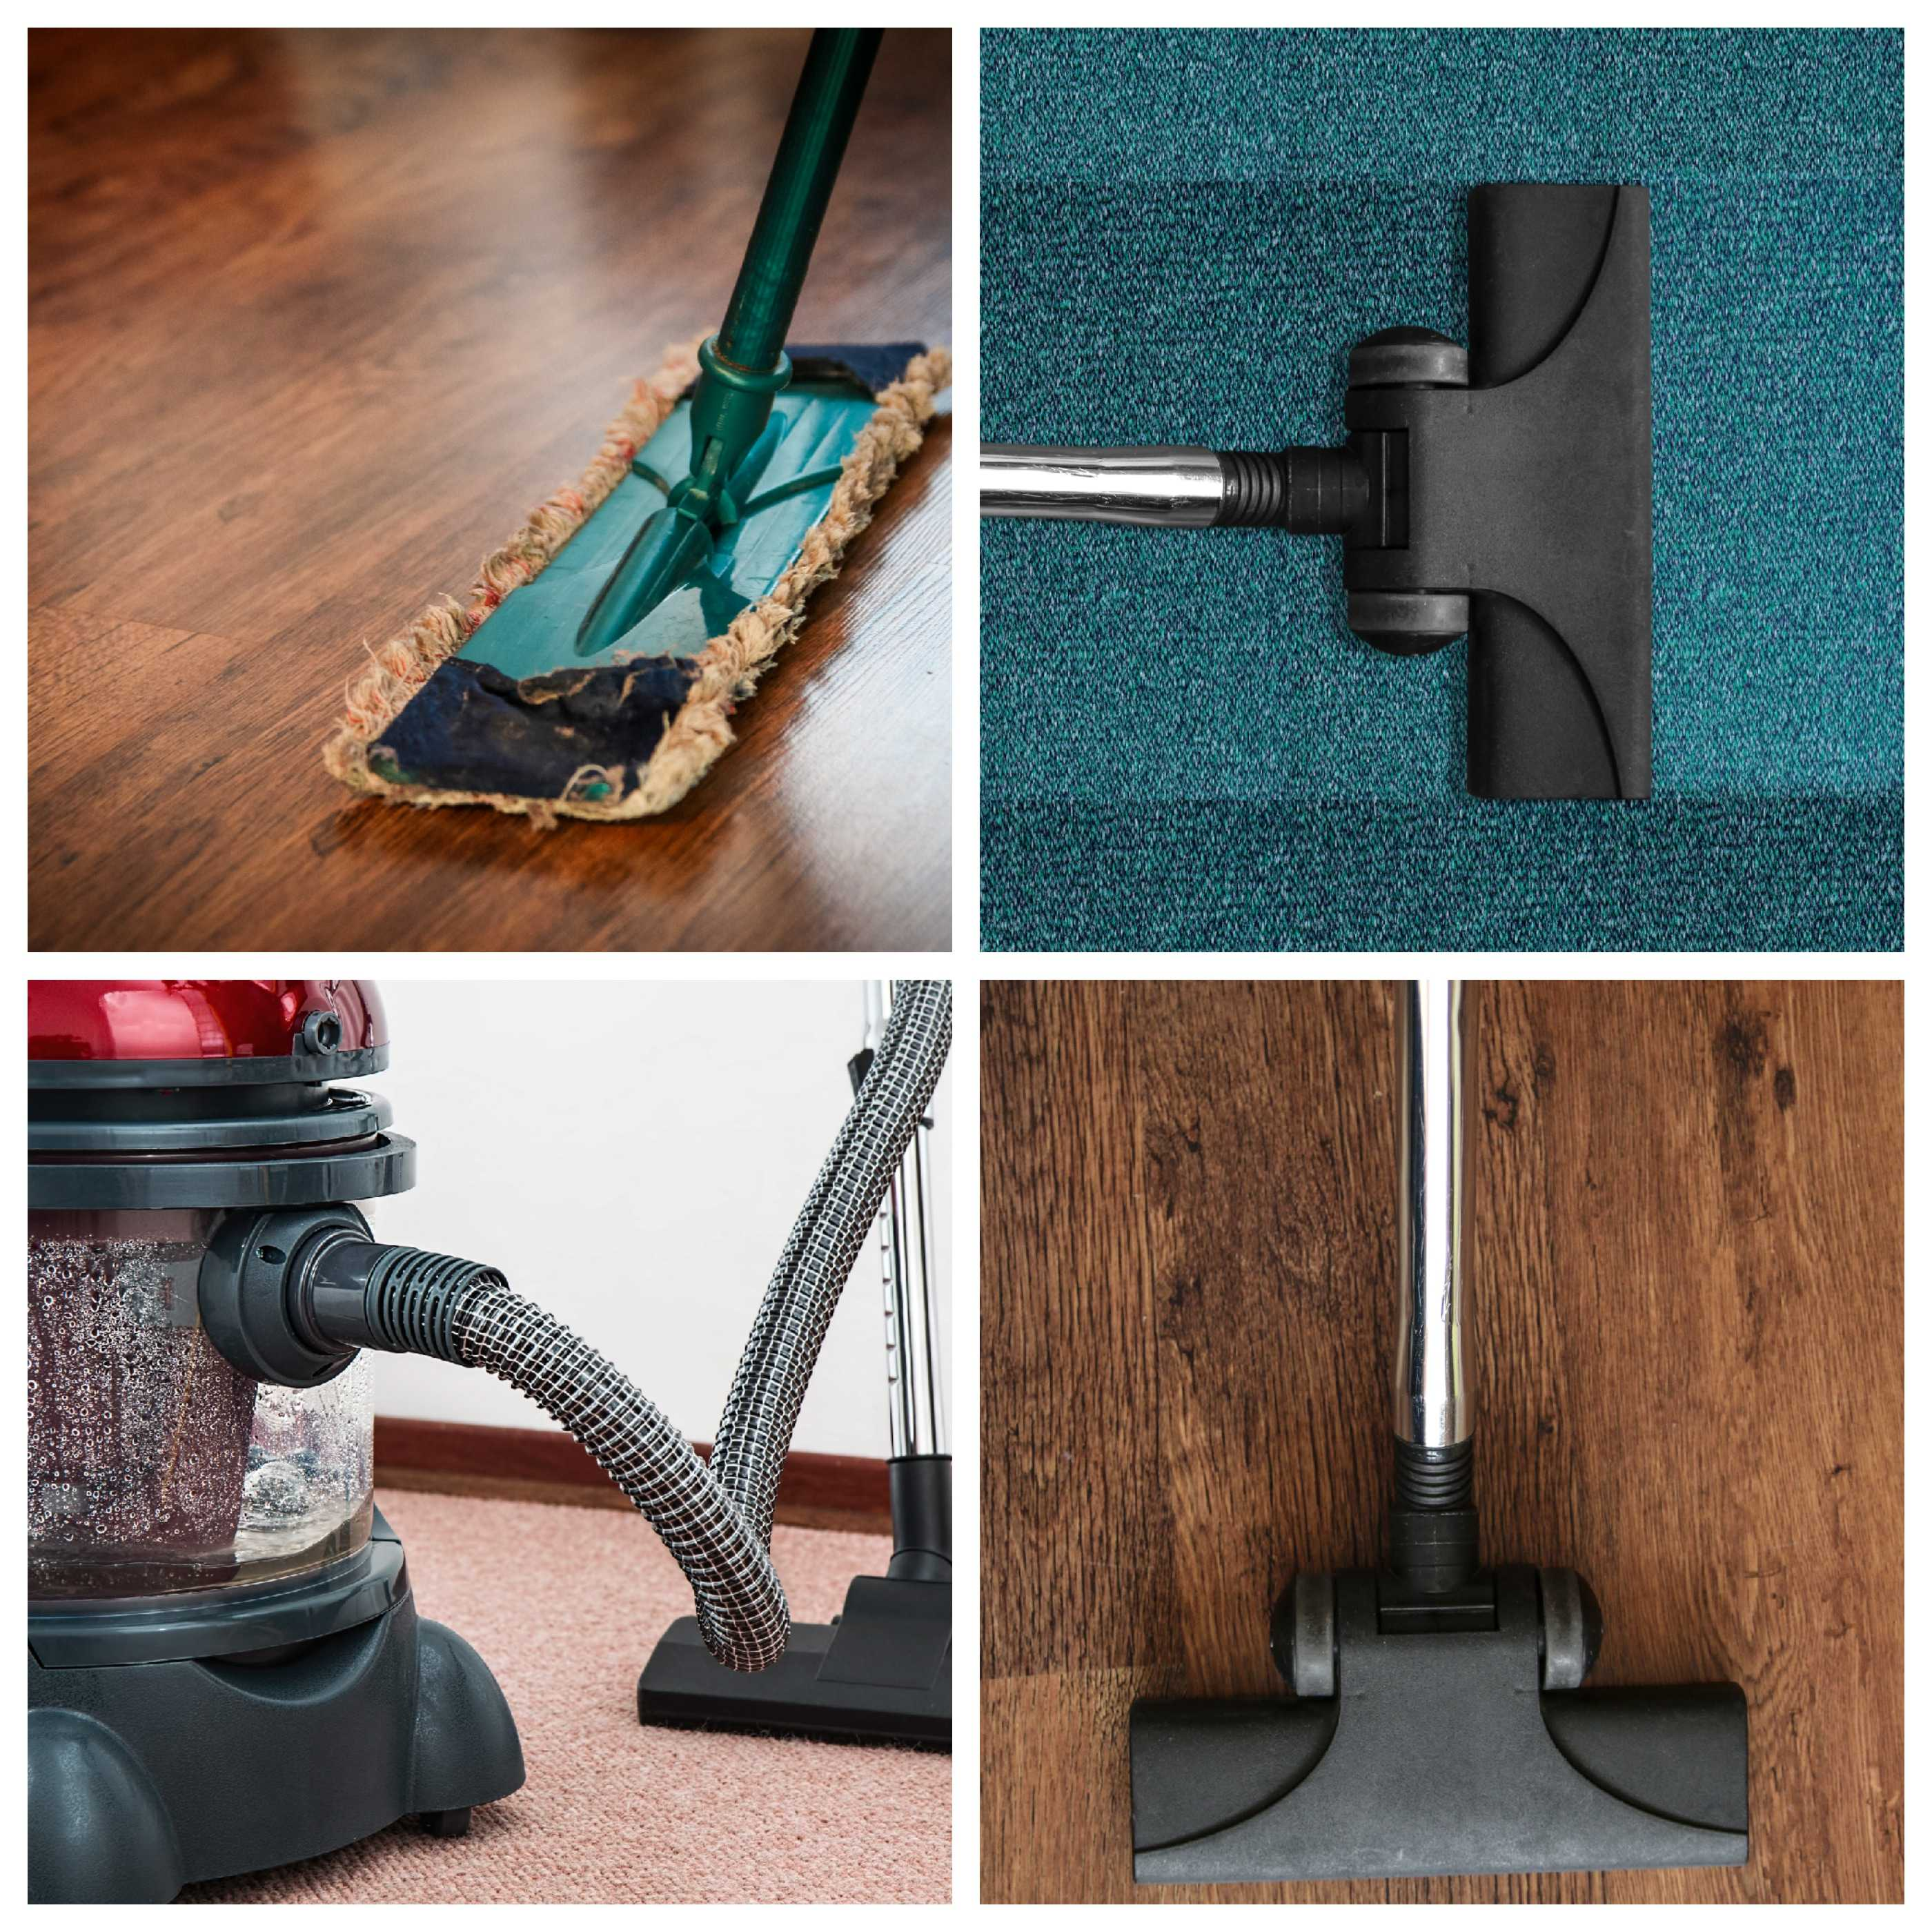 Professional Steam Cleaning For Your Carpets in Perth